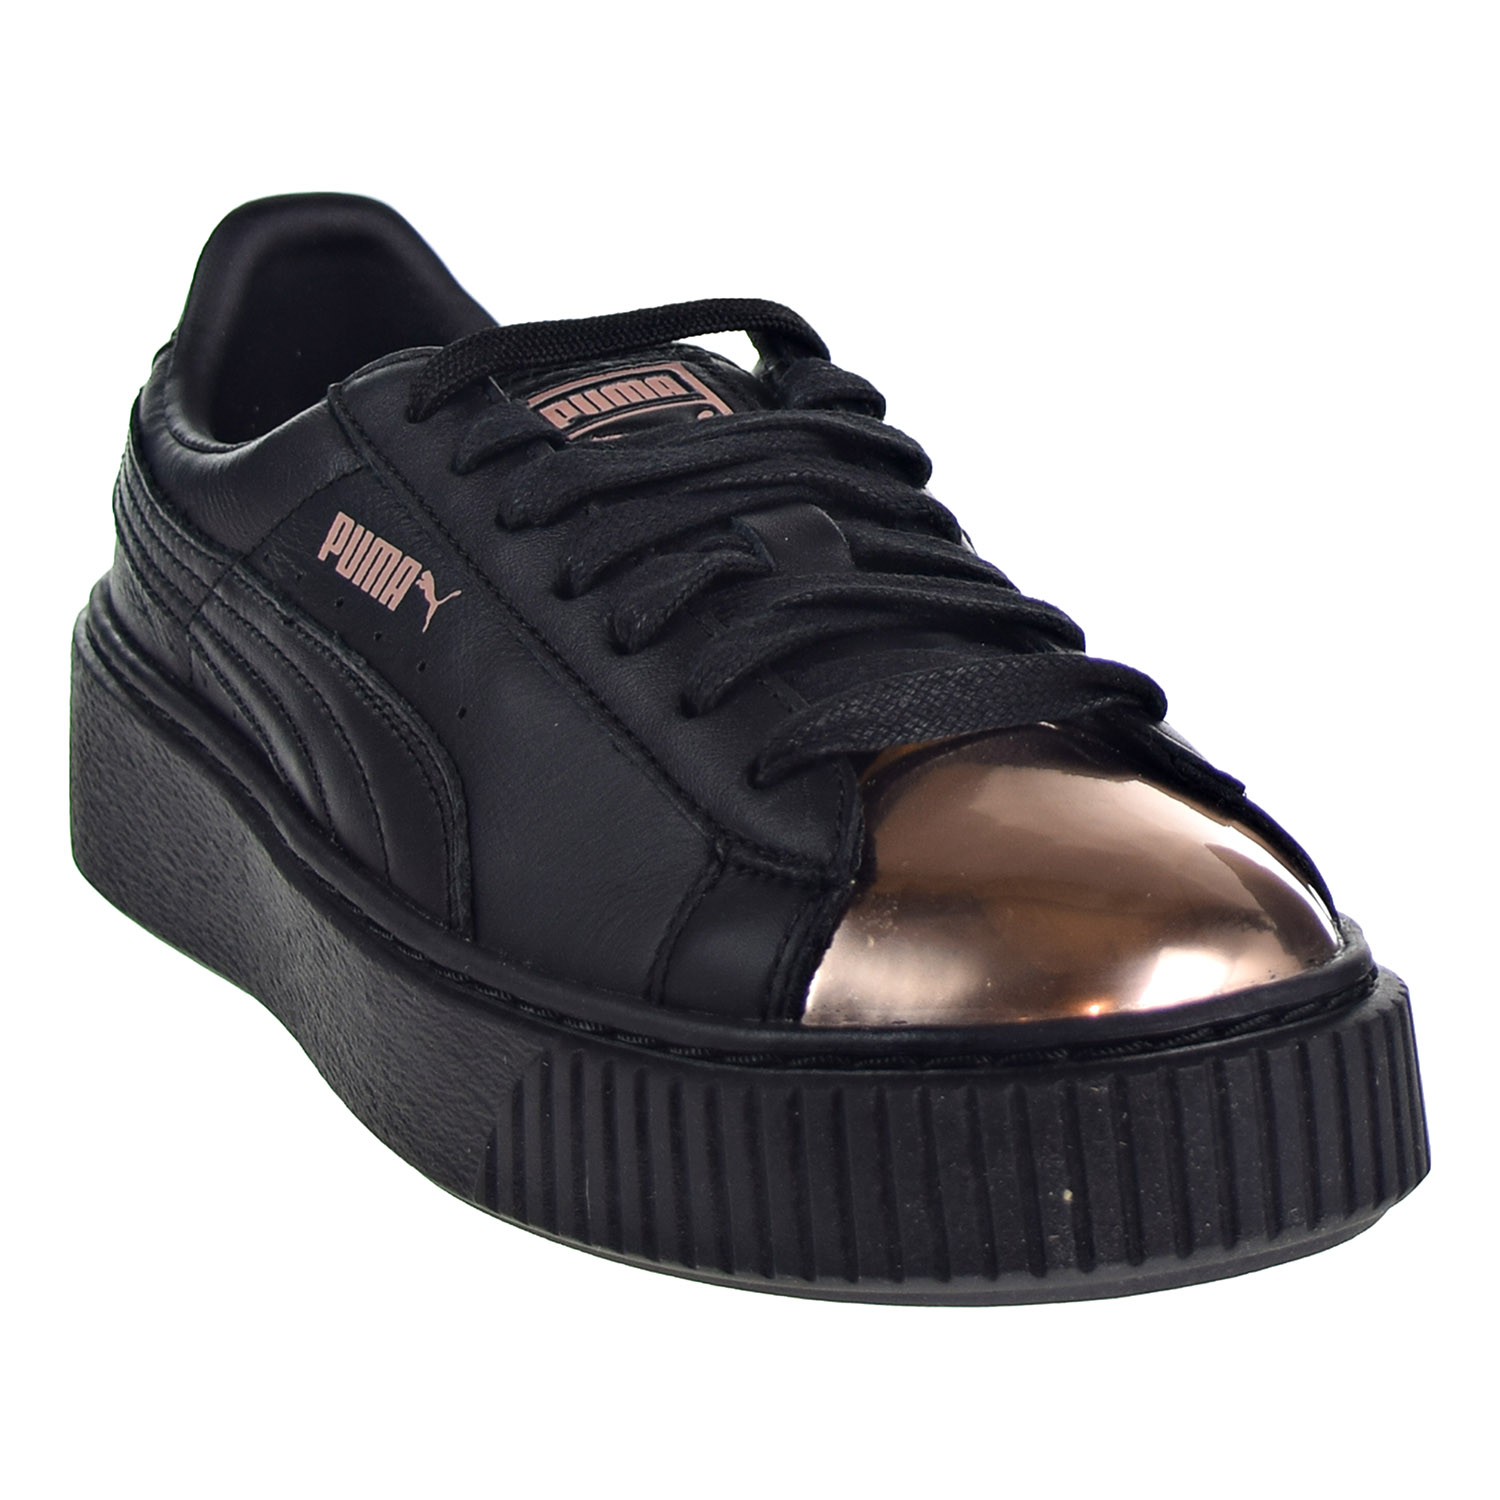 b4fca88a776da6 Puma Basket Platform Metallic Women s Shoes Black Rose Gold 366169 ...